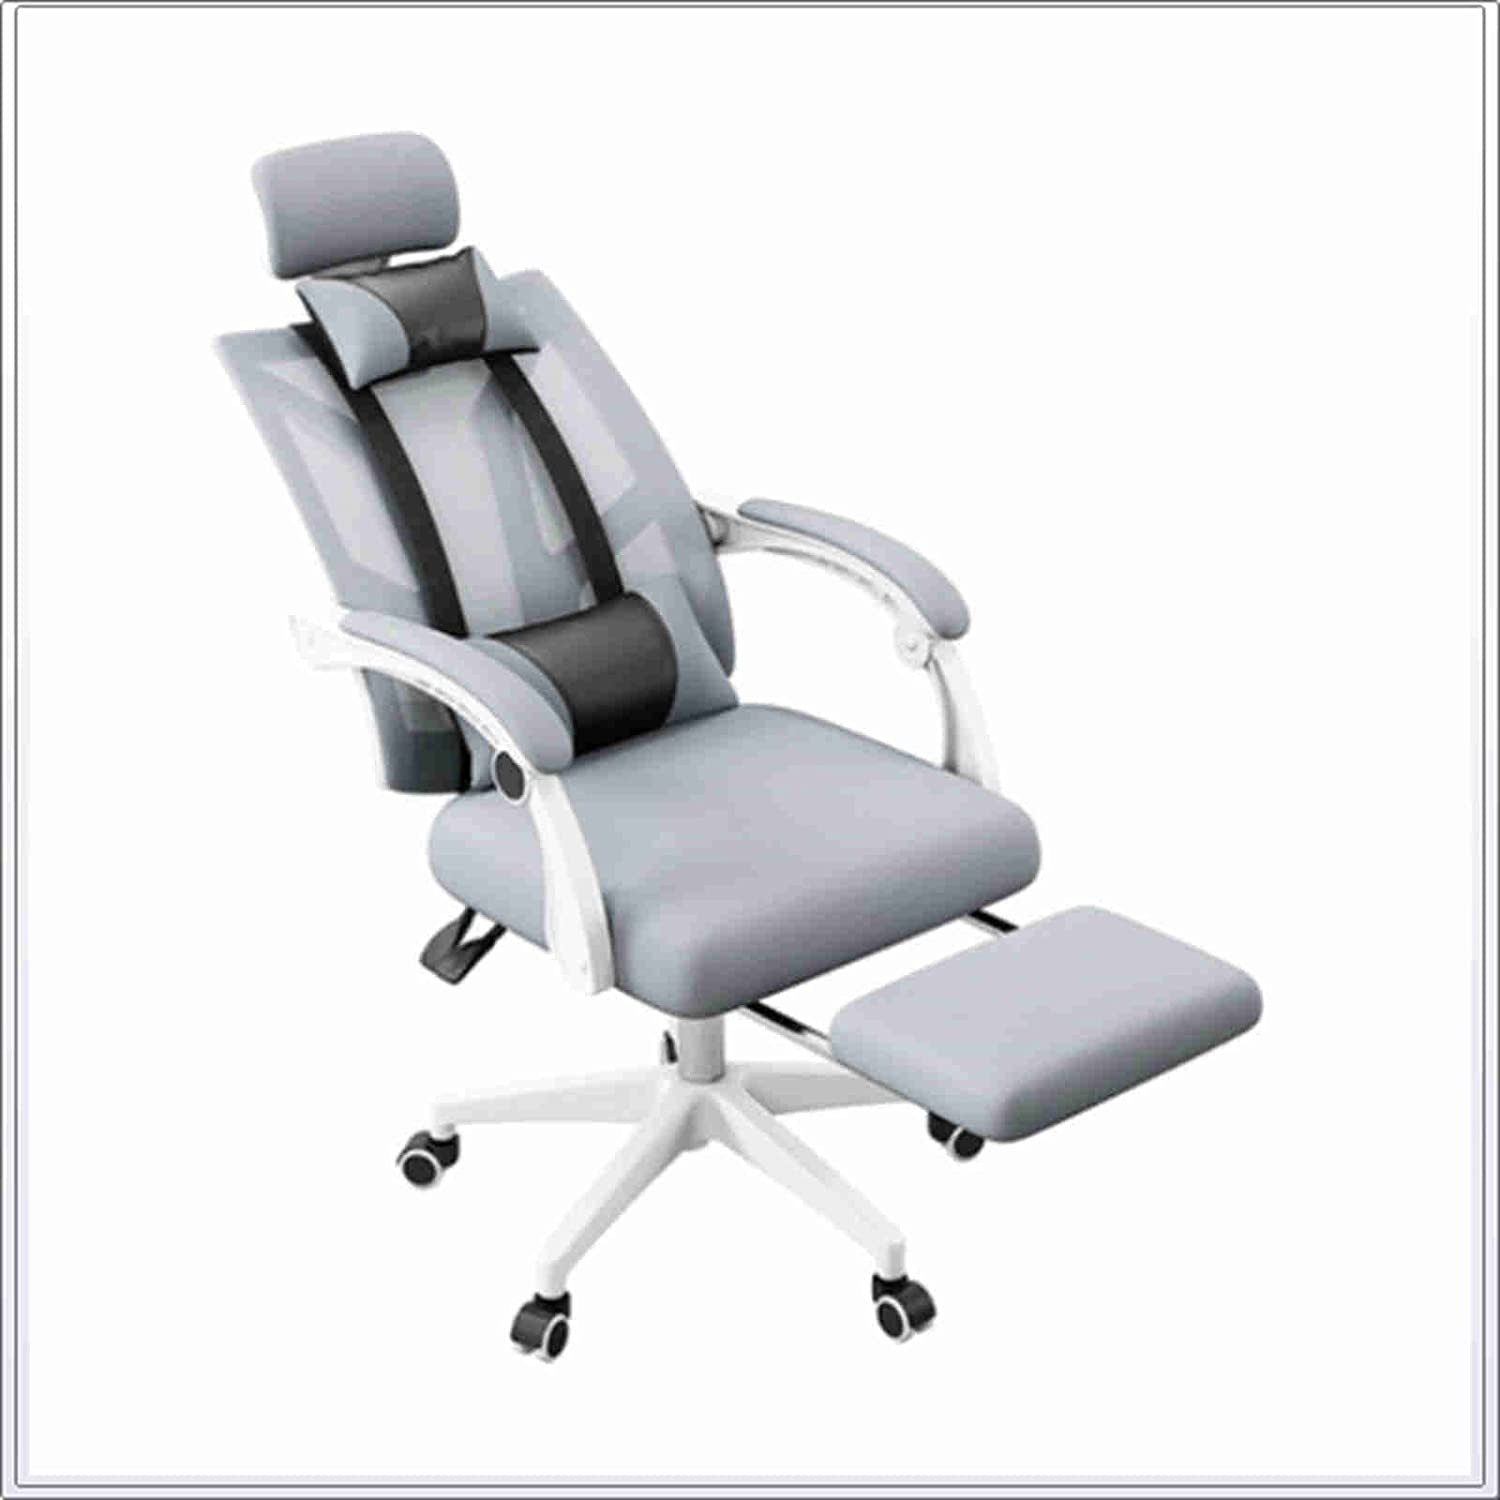 HQYXGS High Back Office Chair with Swivel Desk Save money Headrest Ch trust Mesh